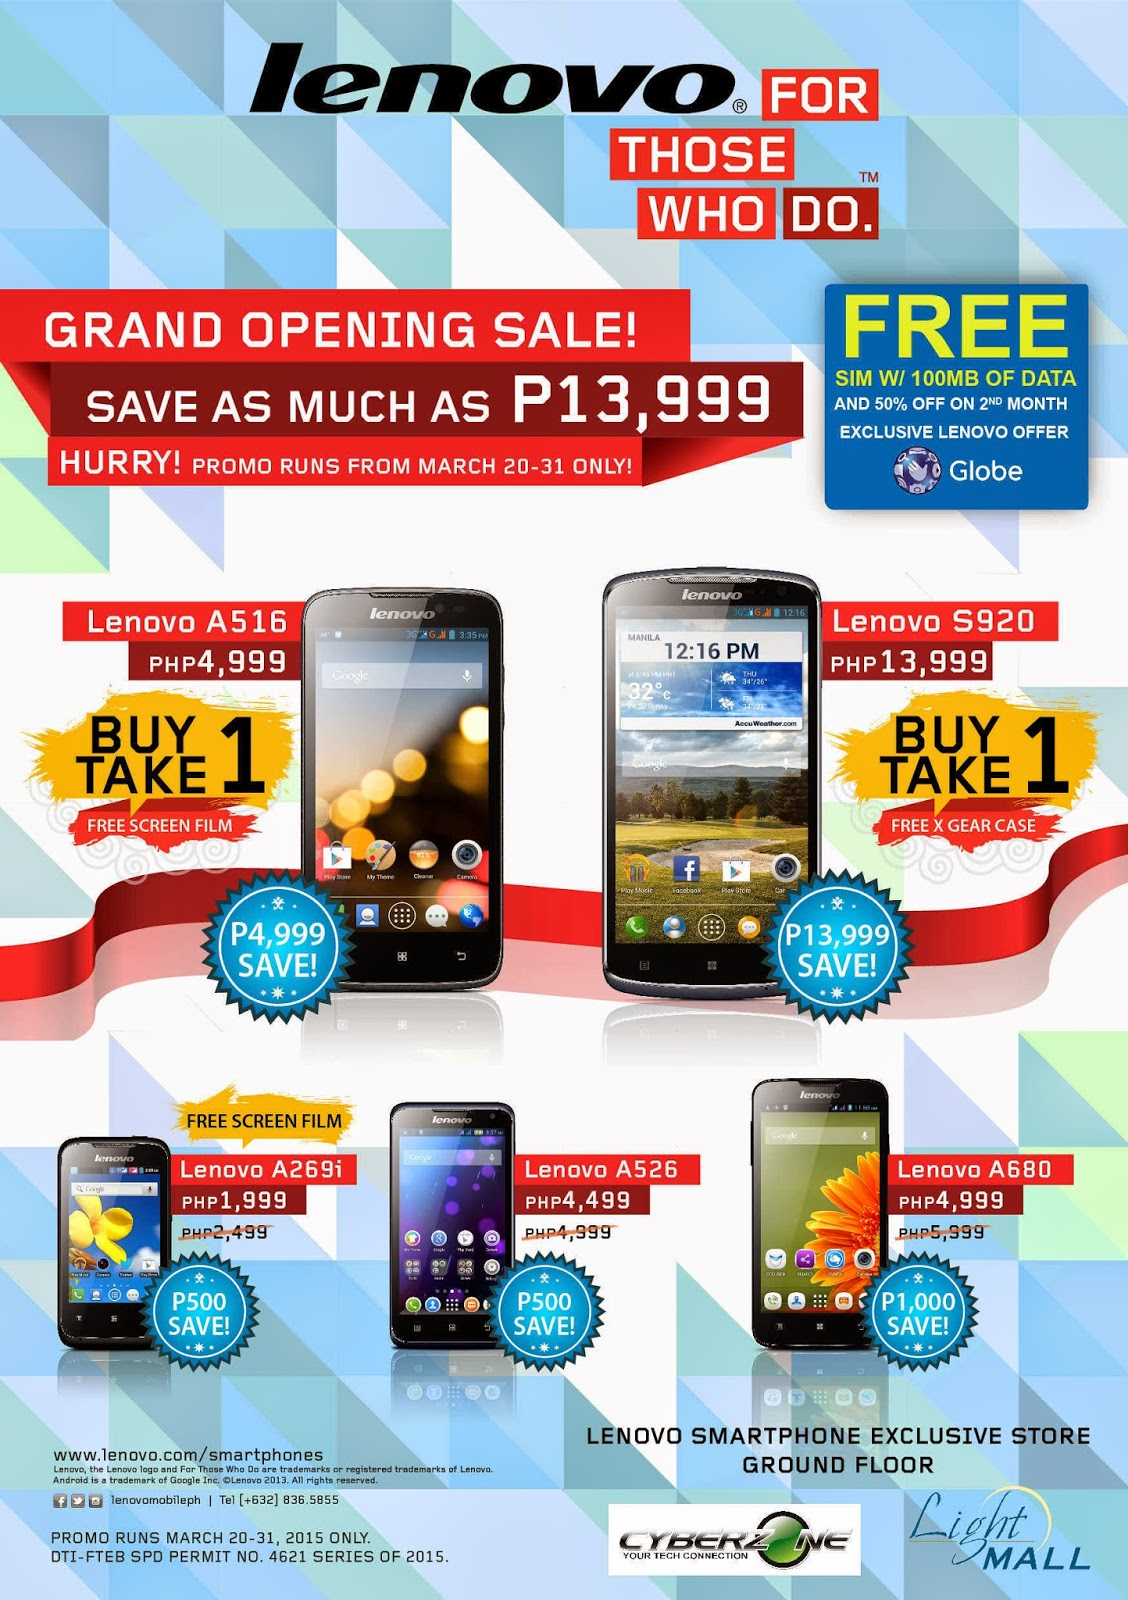 Lenovo Mobile Philippines Holds Buy 1 Take 1 Sale, Get 2 Lenovo S920s for P13,999